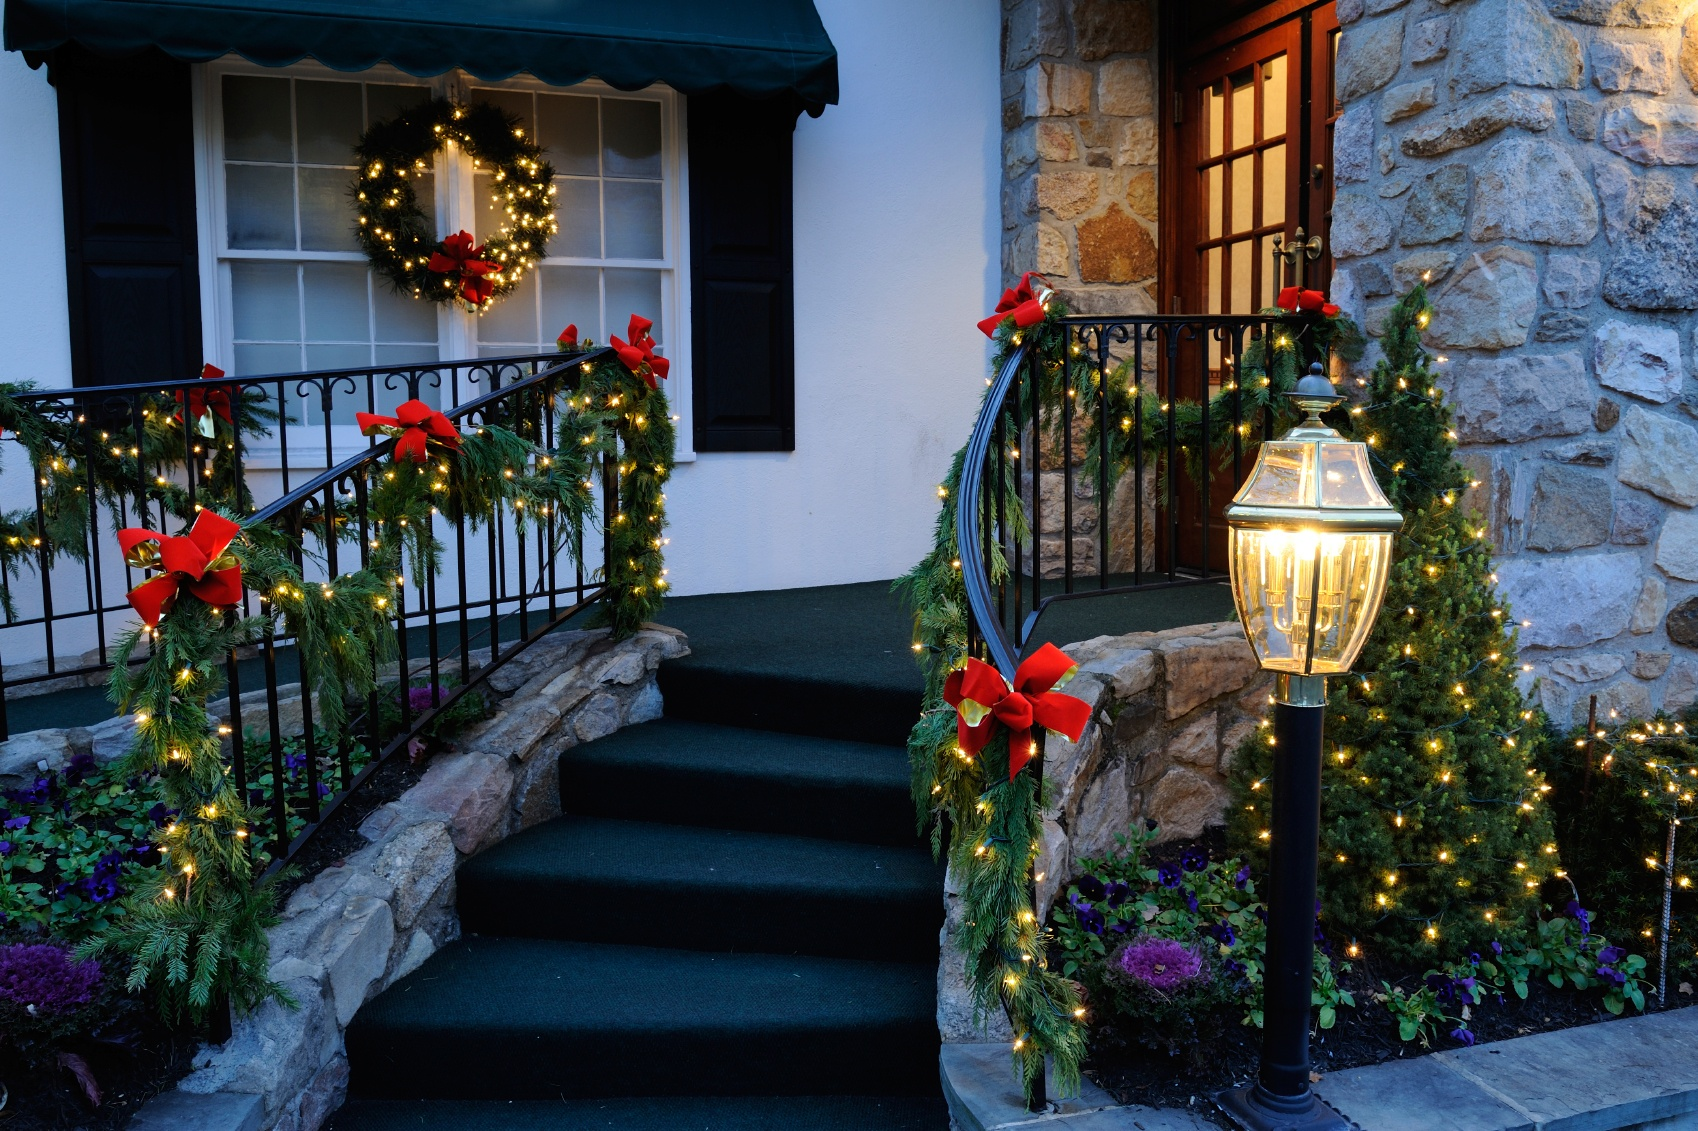 porch railing christmas ideas - Christmas Porch Railing Decorations